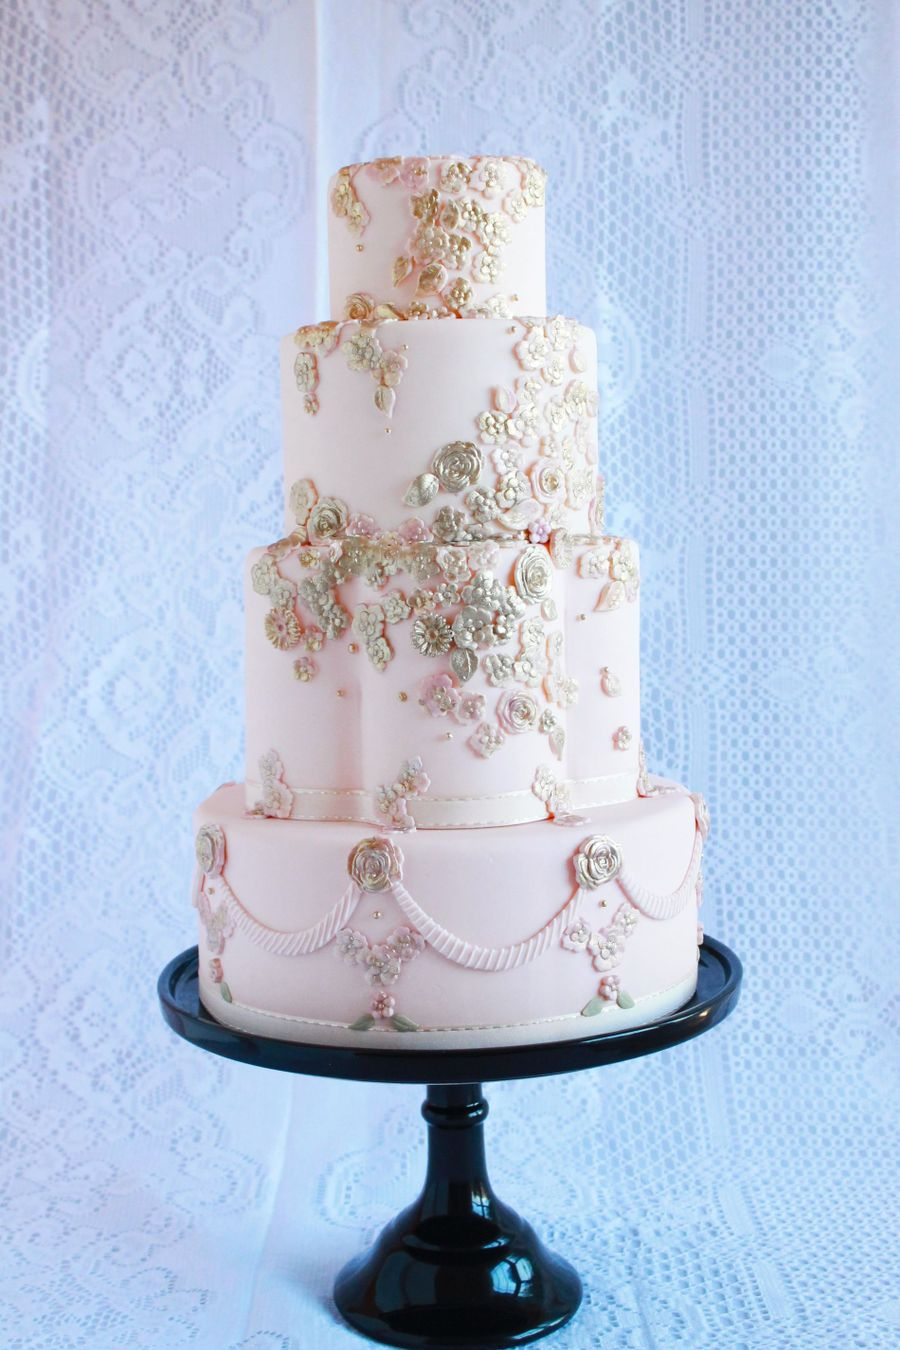 What Is Bas Relief In Cake Decorating